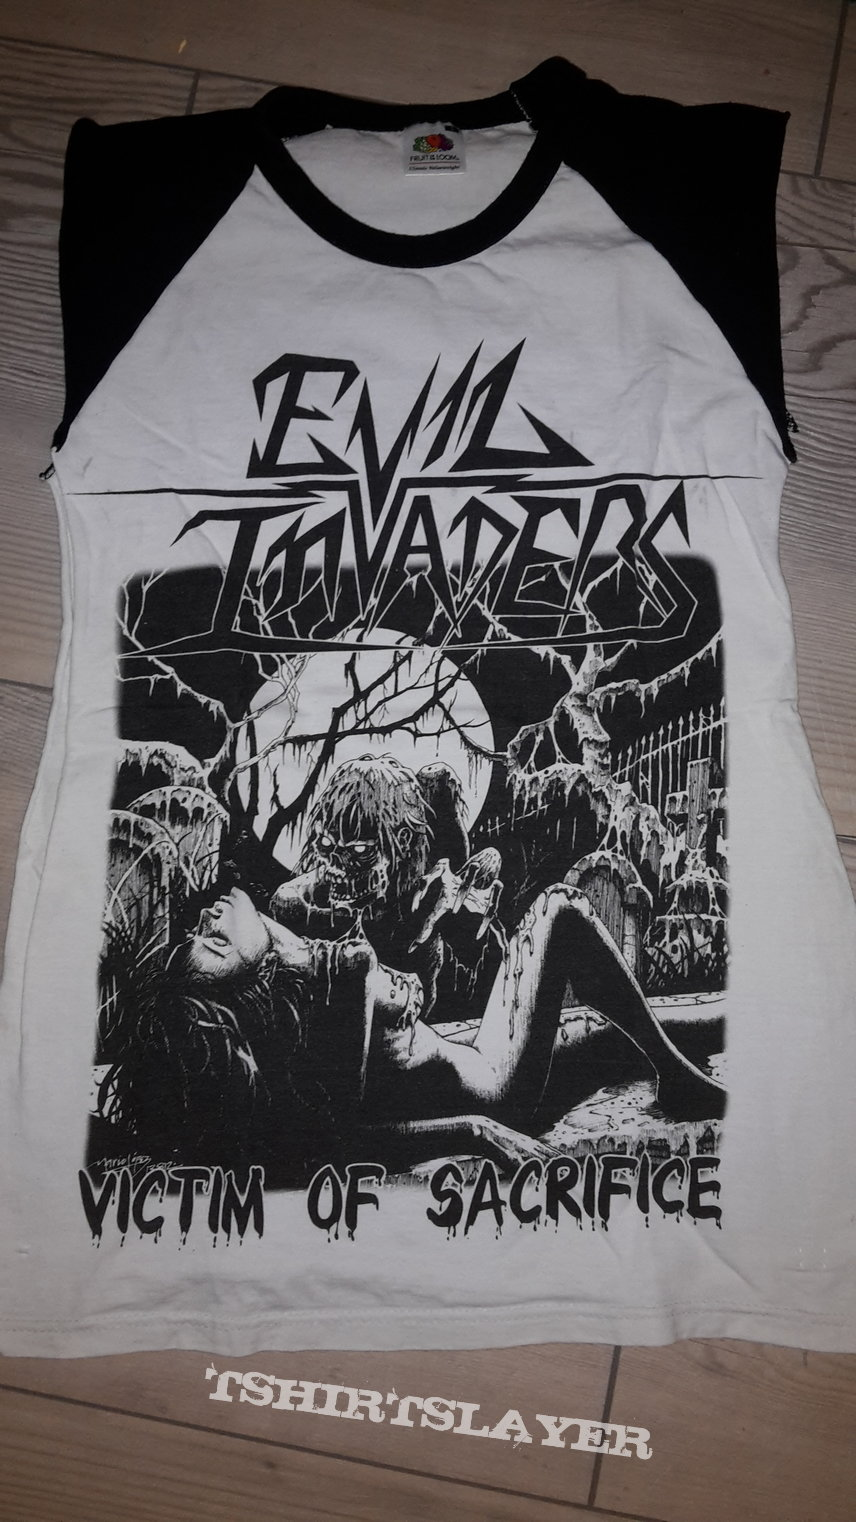 Evil Invaders - Victim of Sacrifice shirt sleeveless